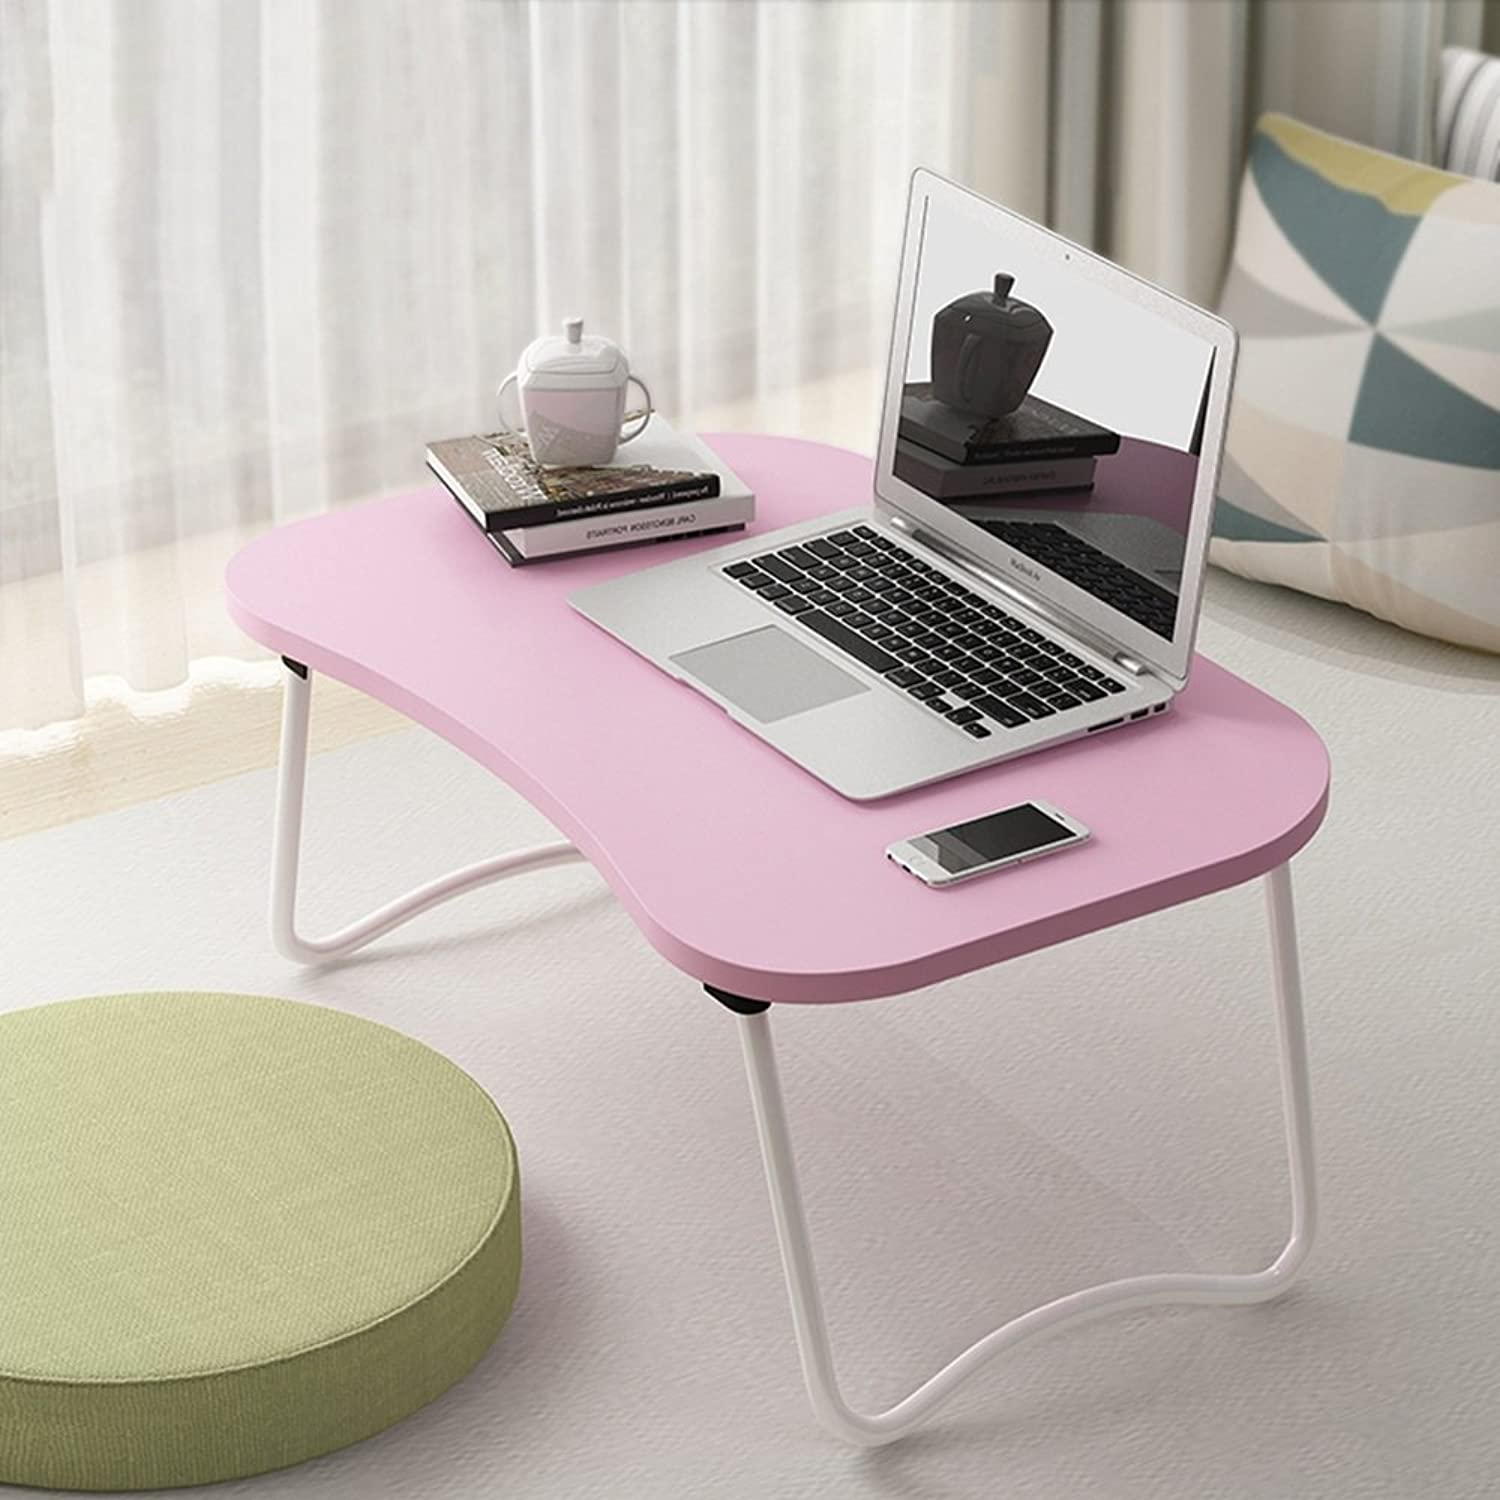 QFFL Table Folding Table Folding Computer Table Single Folding Table for Everyone Simple Book Desk 3 color Optional Lapdesks (color   A)